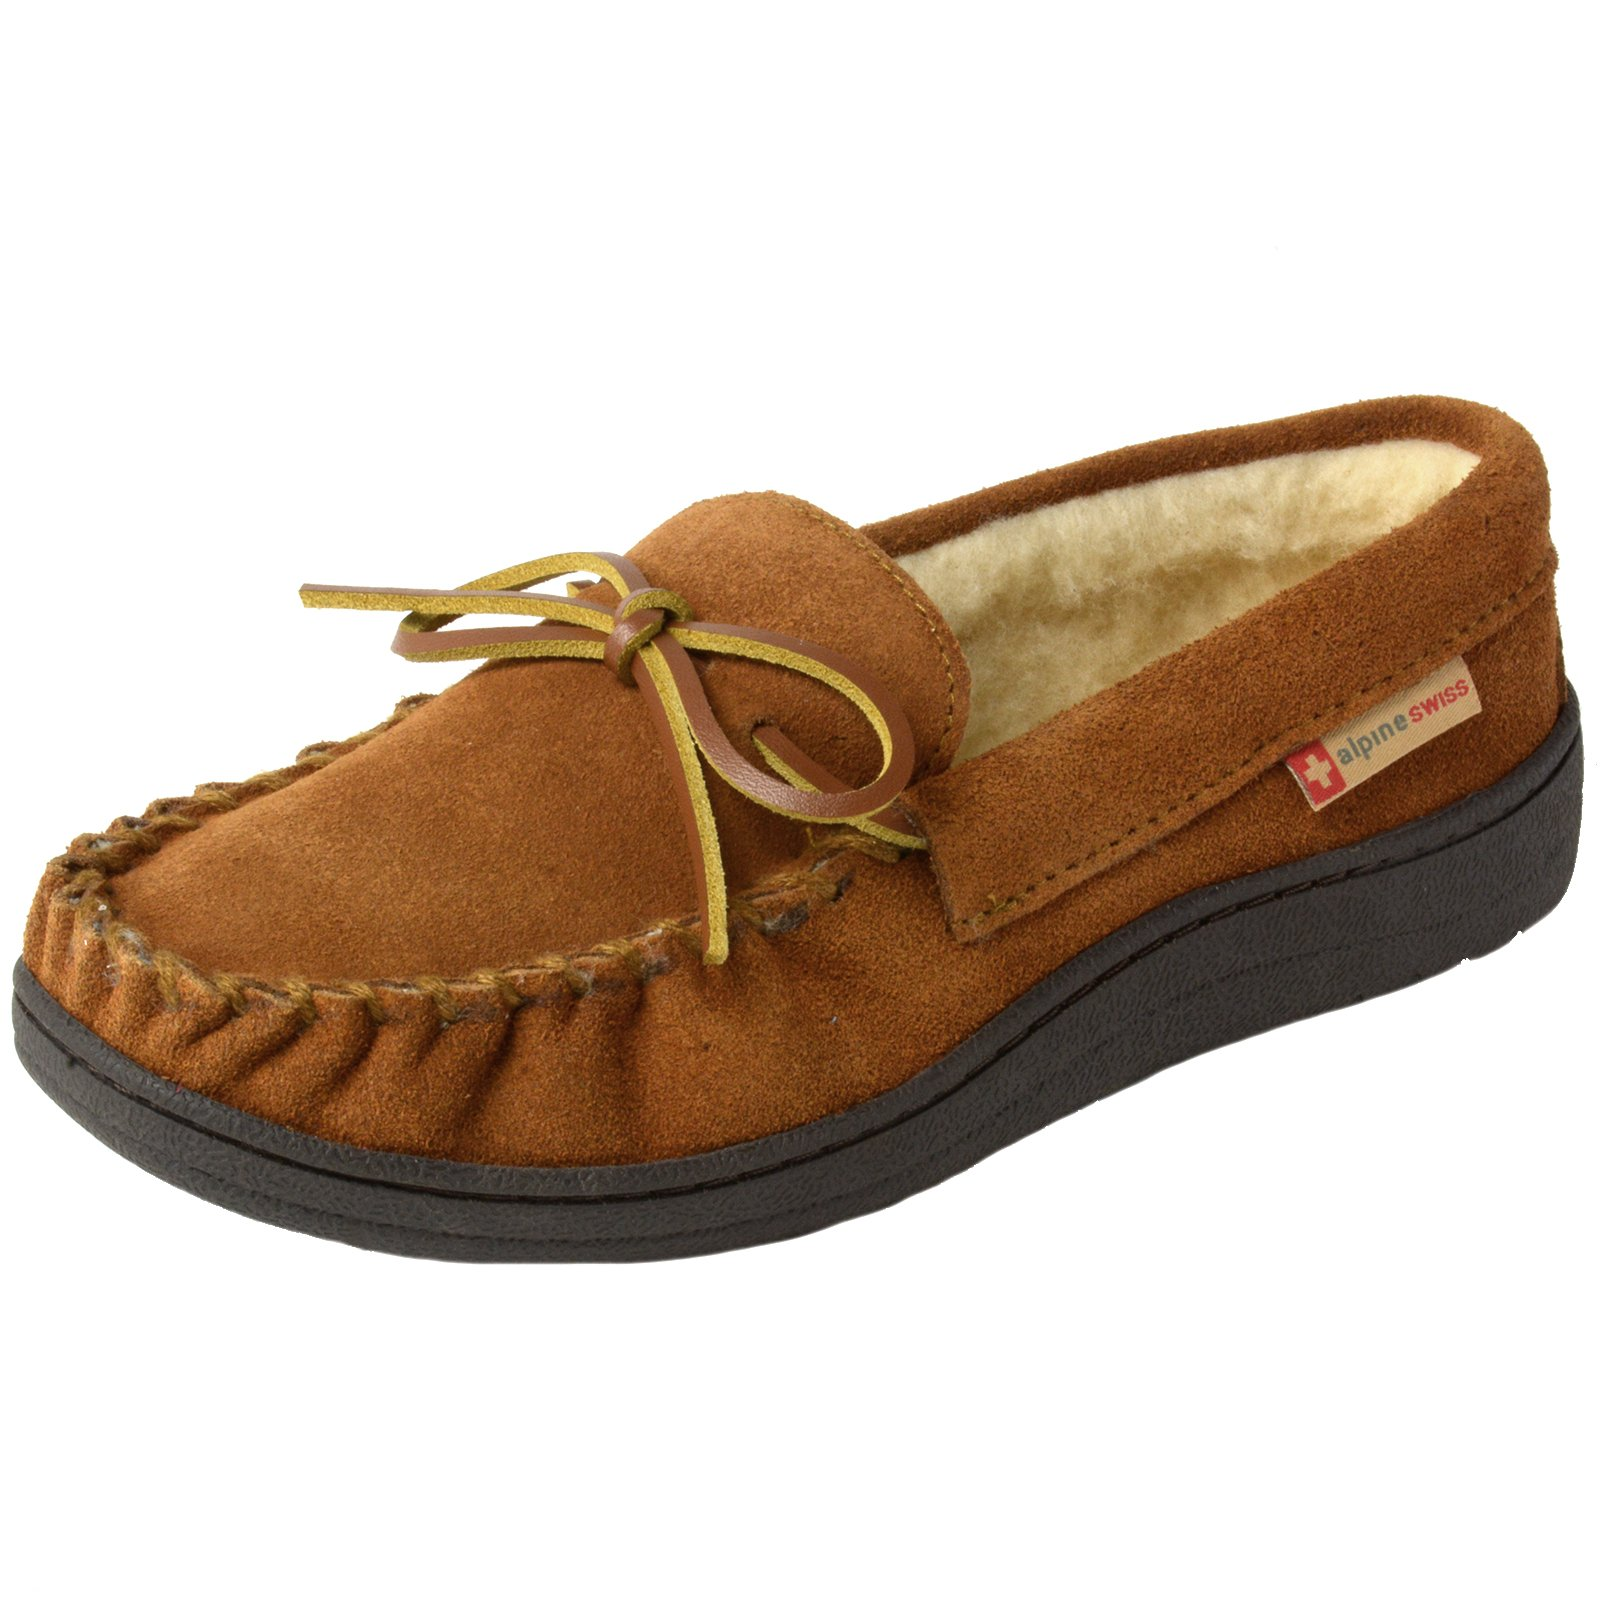 alpine swiss Sabine Womens Suede Shearling Slip On Moccasin Slippers Chestnut 8 M US